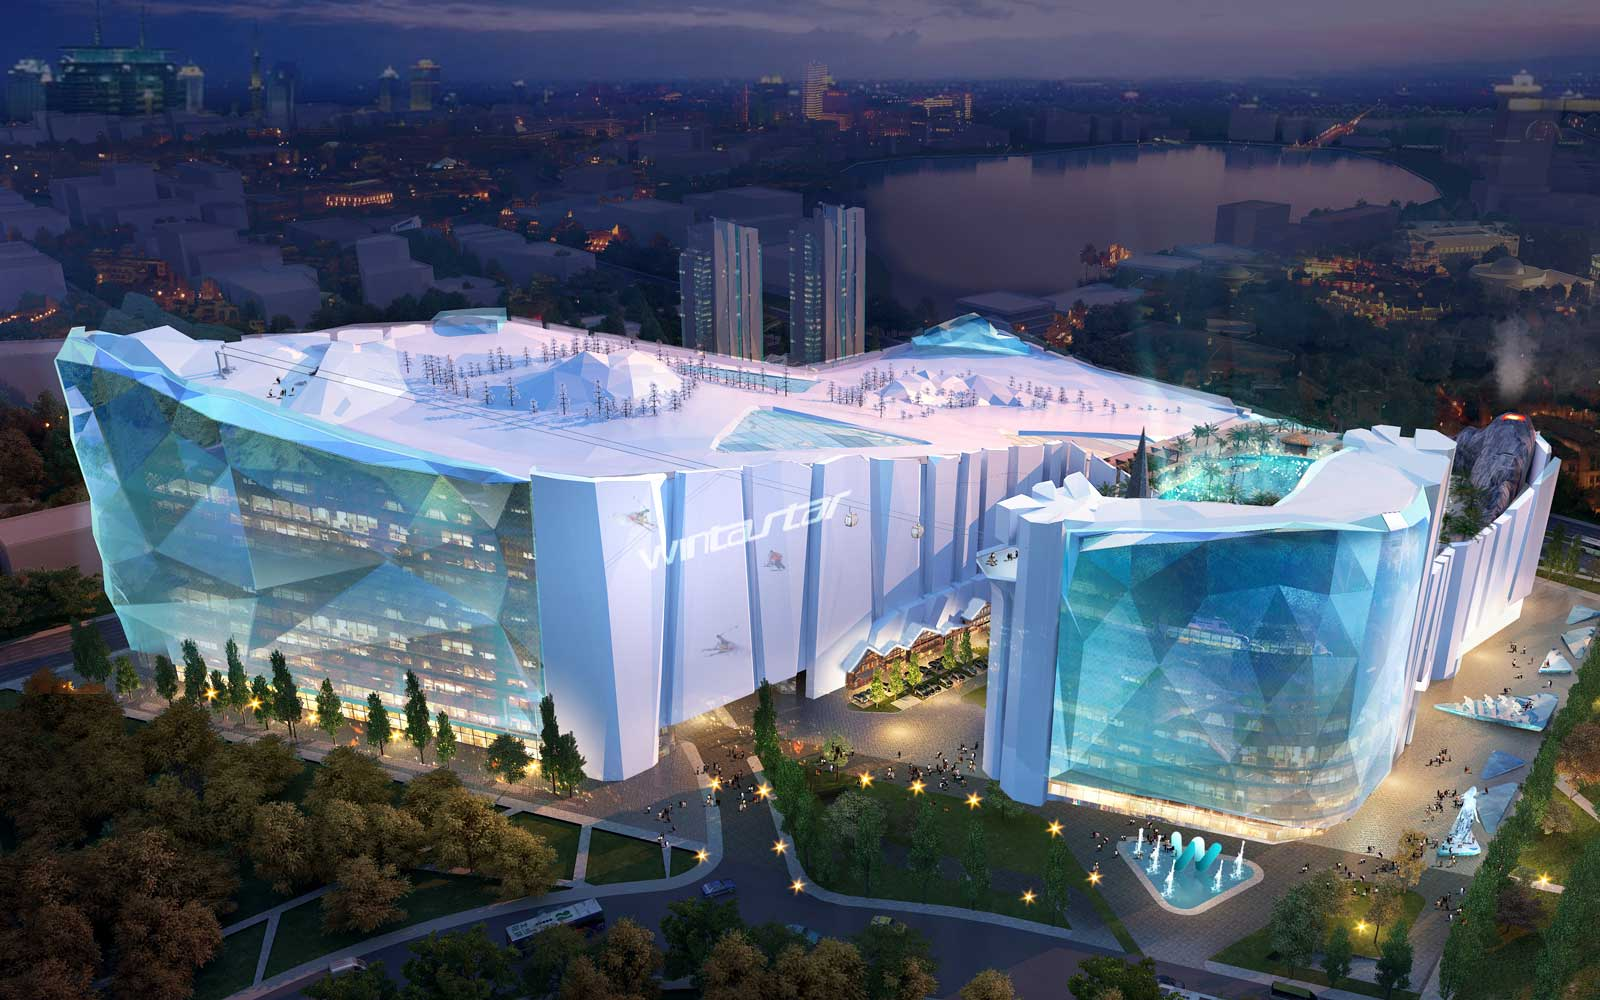 The World's Largest Indoor Ski Resort Will Have an Ice Hotel